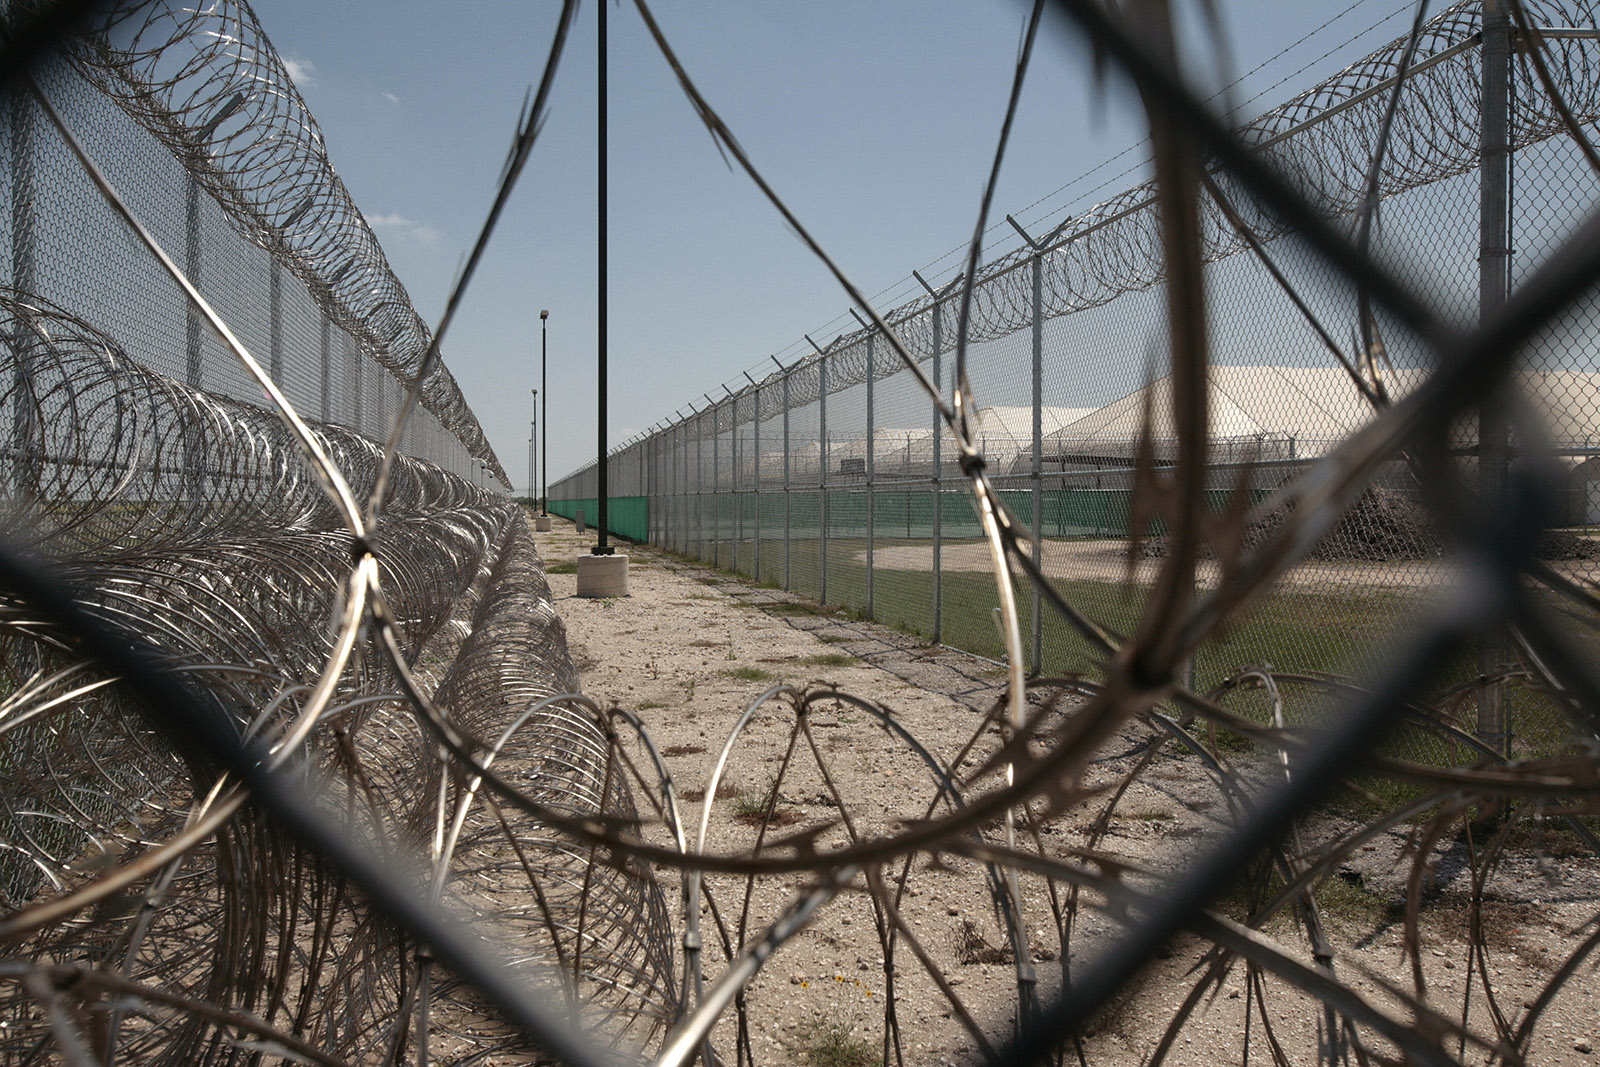 Barbed wire, fences, and security cameras surrounding a tent city constructed in 2007 to house undocumented immigrants in Raymondville, Texas